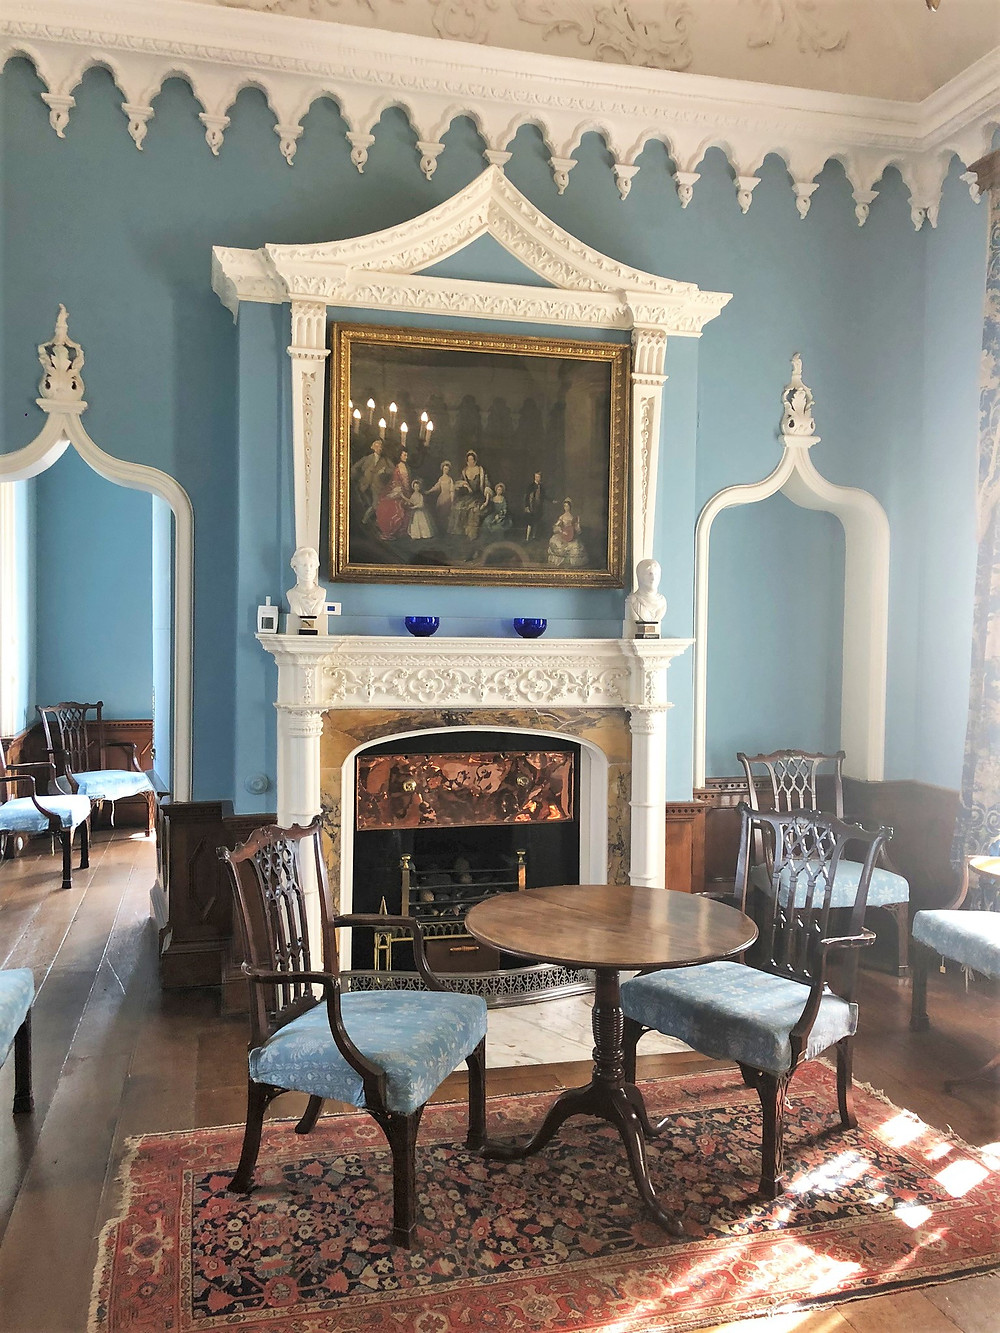 the Lady Chapel in St Michael's Mount castle, which dates to the 12th century, was converted in 1750 to the Blue Drawing Room